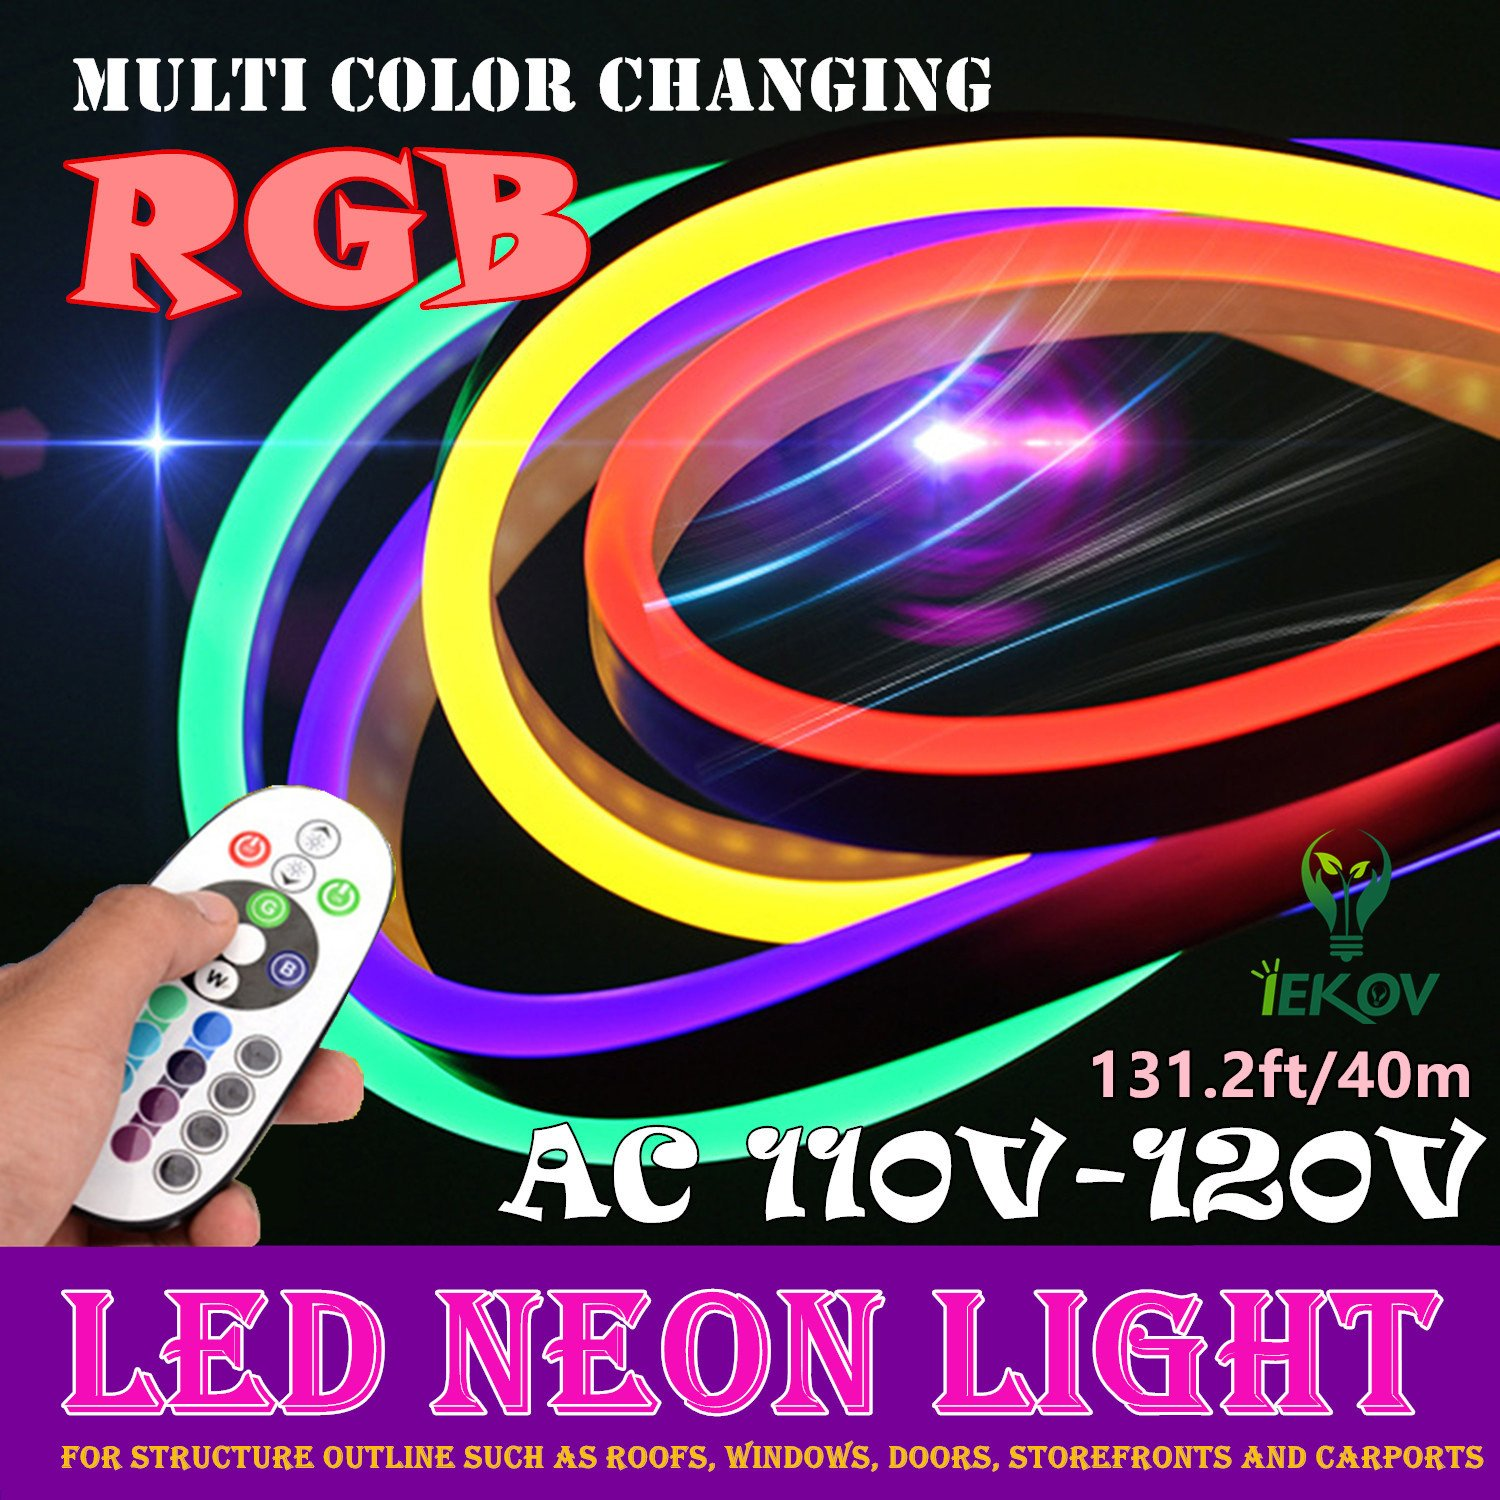 Amazon led neon light iekov ac 110 120v flexible rgb led amazon led neon light iekov ac 110 120v flexible rgb led neon light strip 60 ledsm waterproof multi color changing 5050 smd led rope light mozeypictures